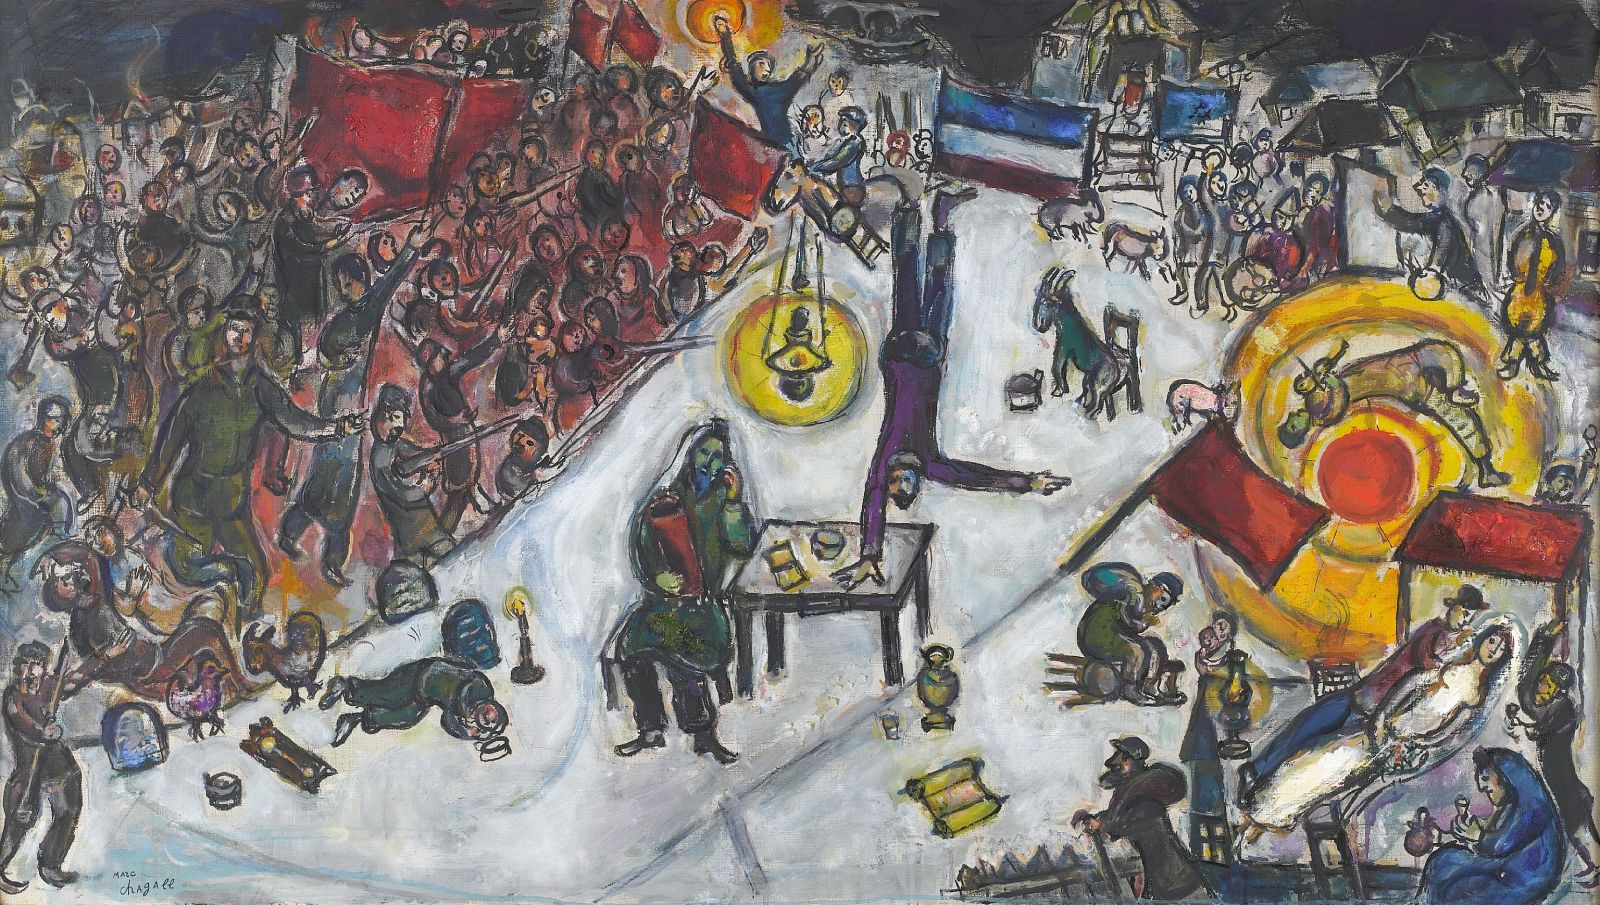 Marc Chagall, The Revolution 1968